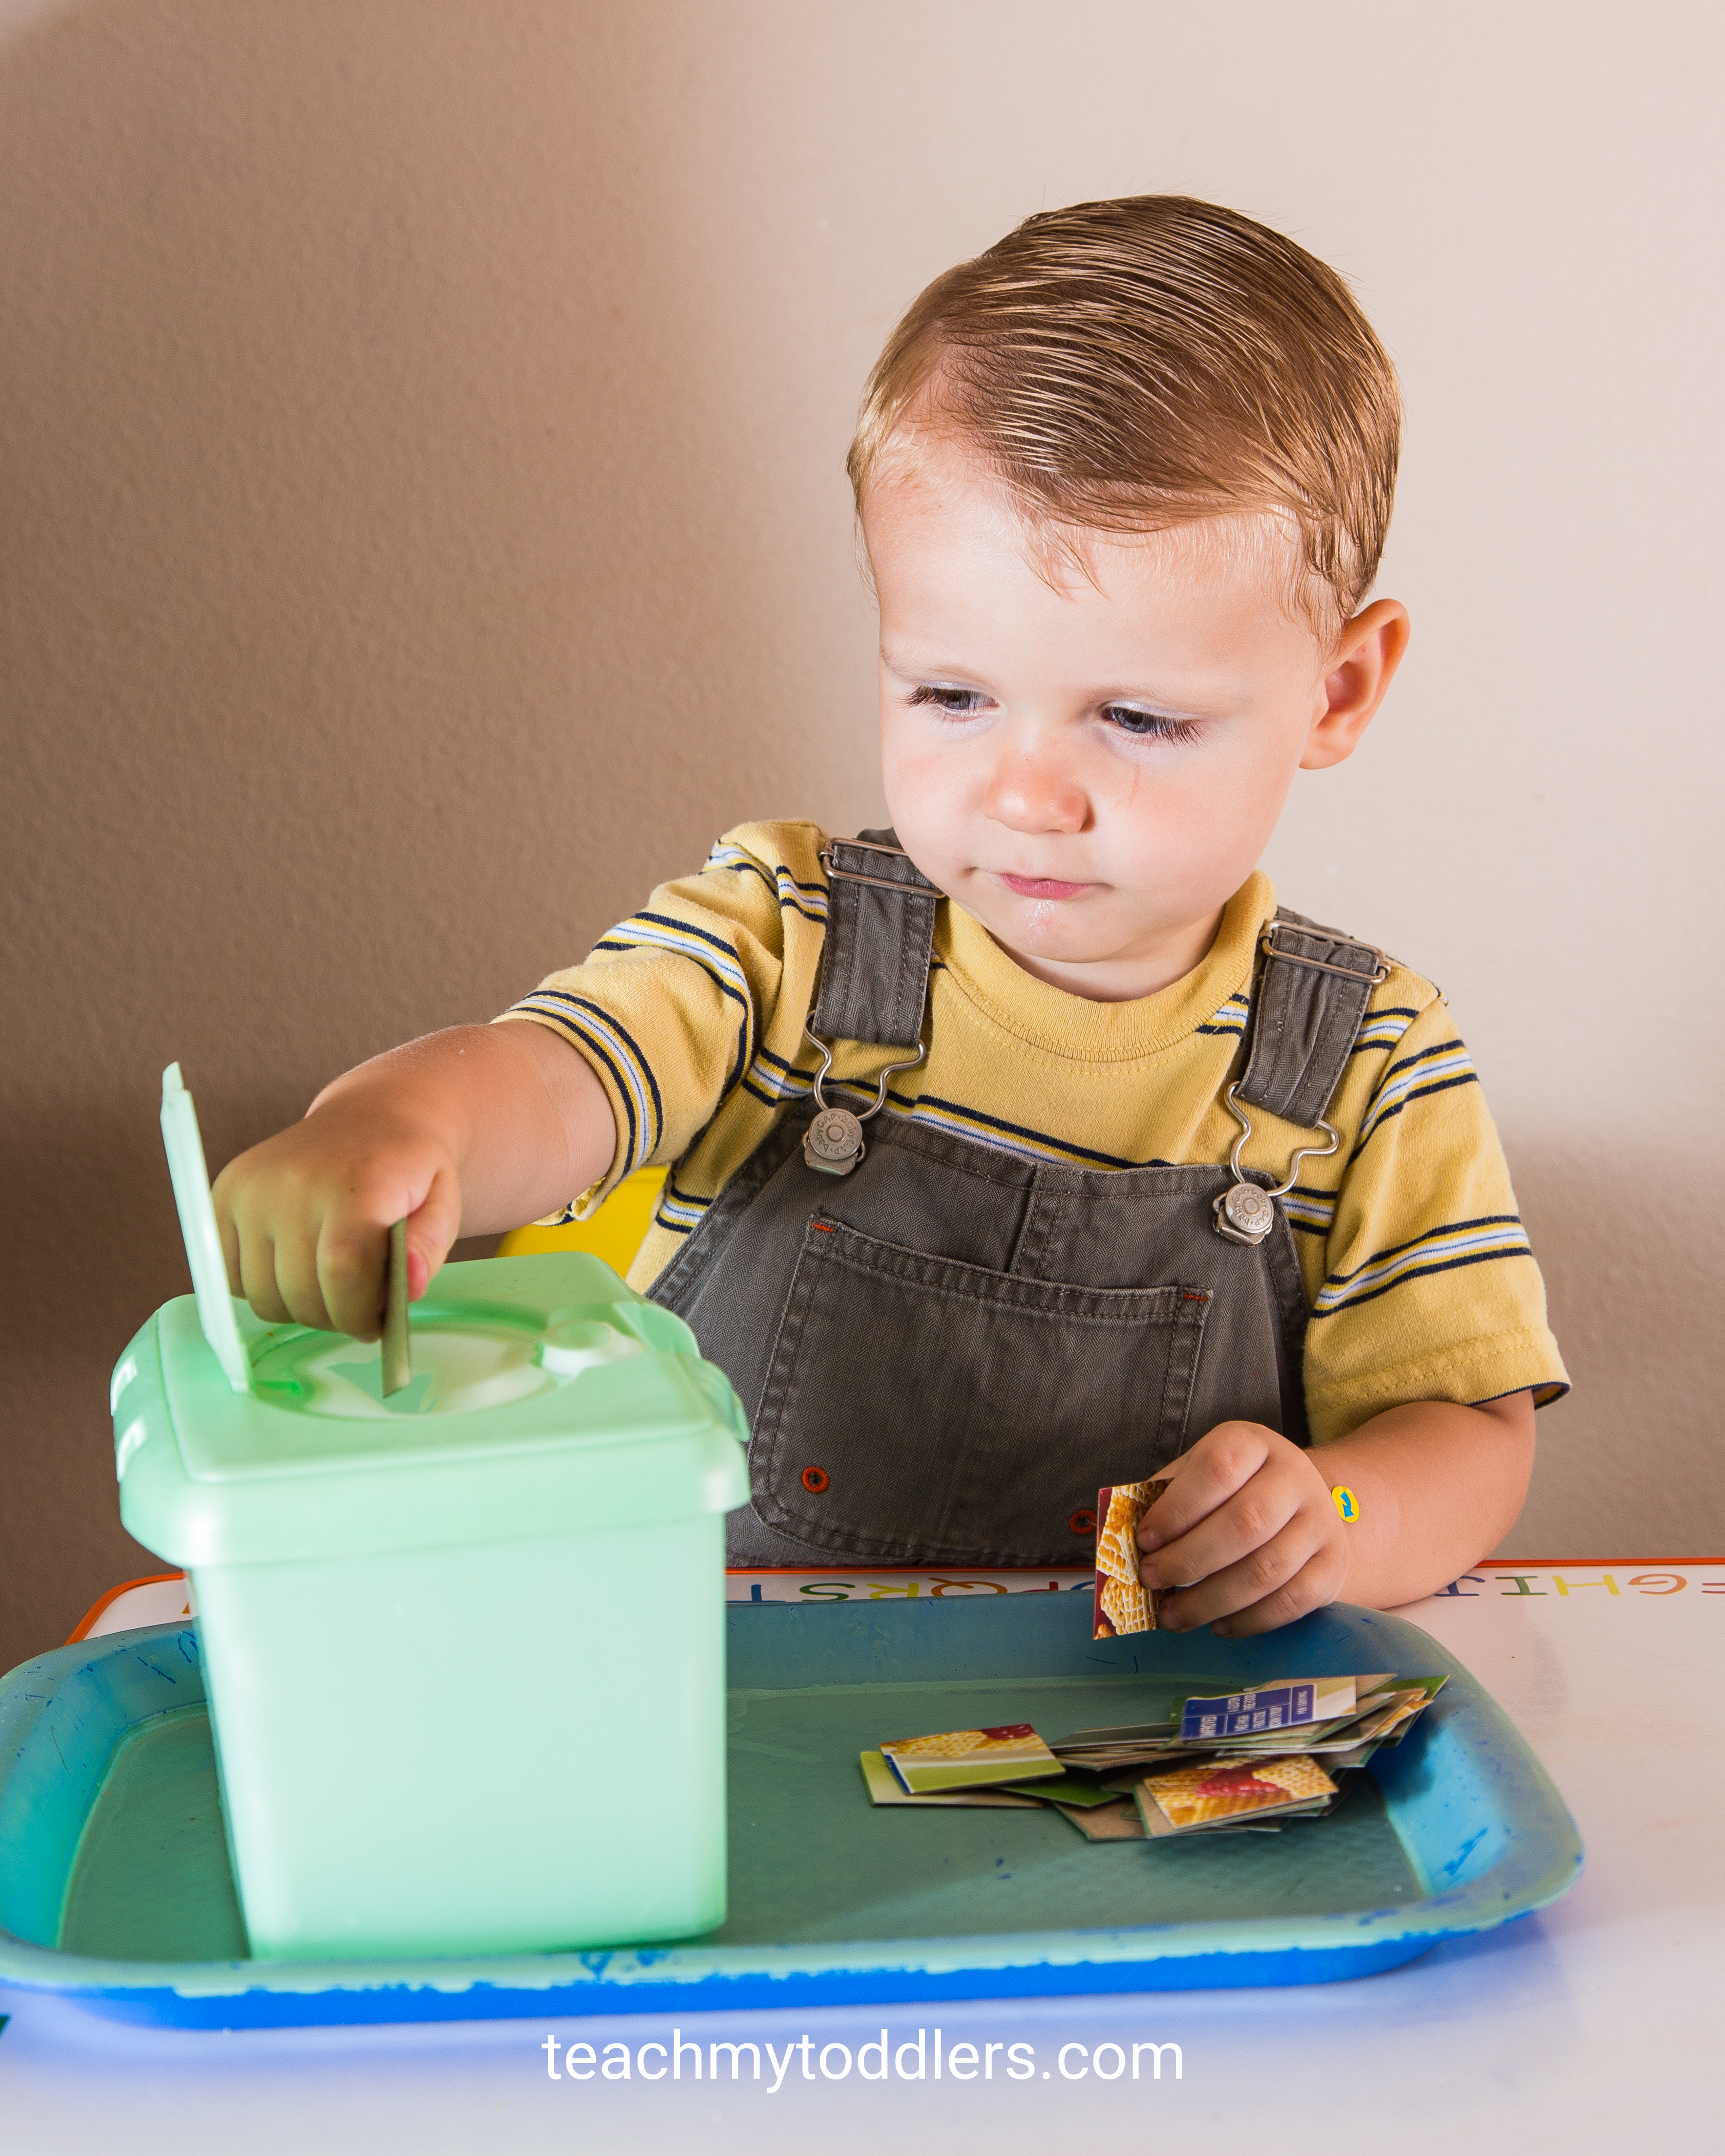 These square trays are so fun to use to teach toddlers shapes